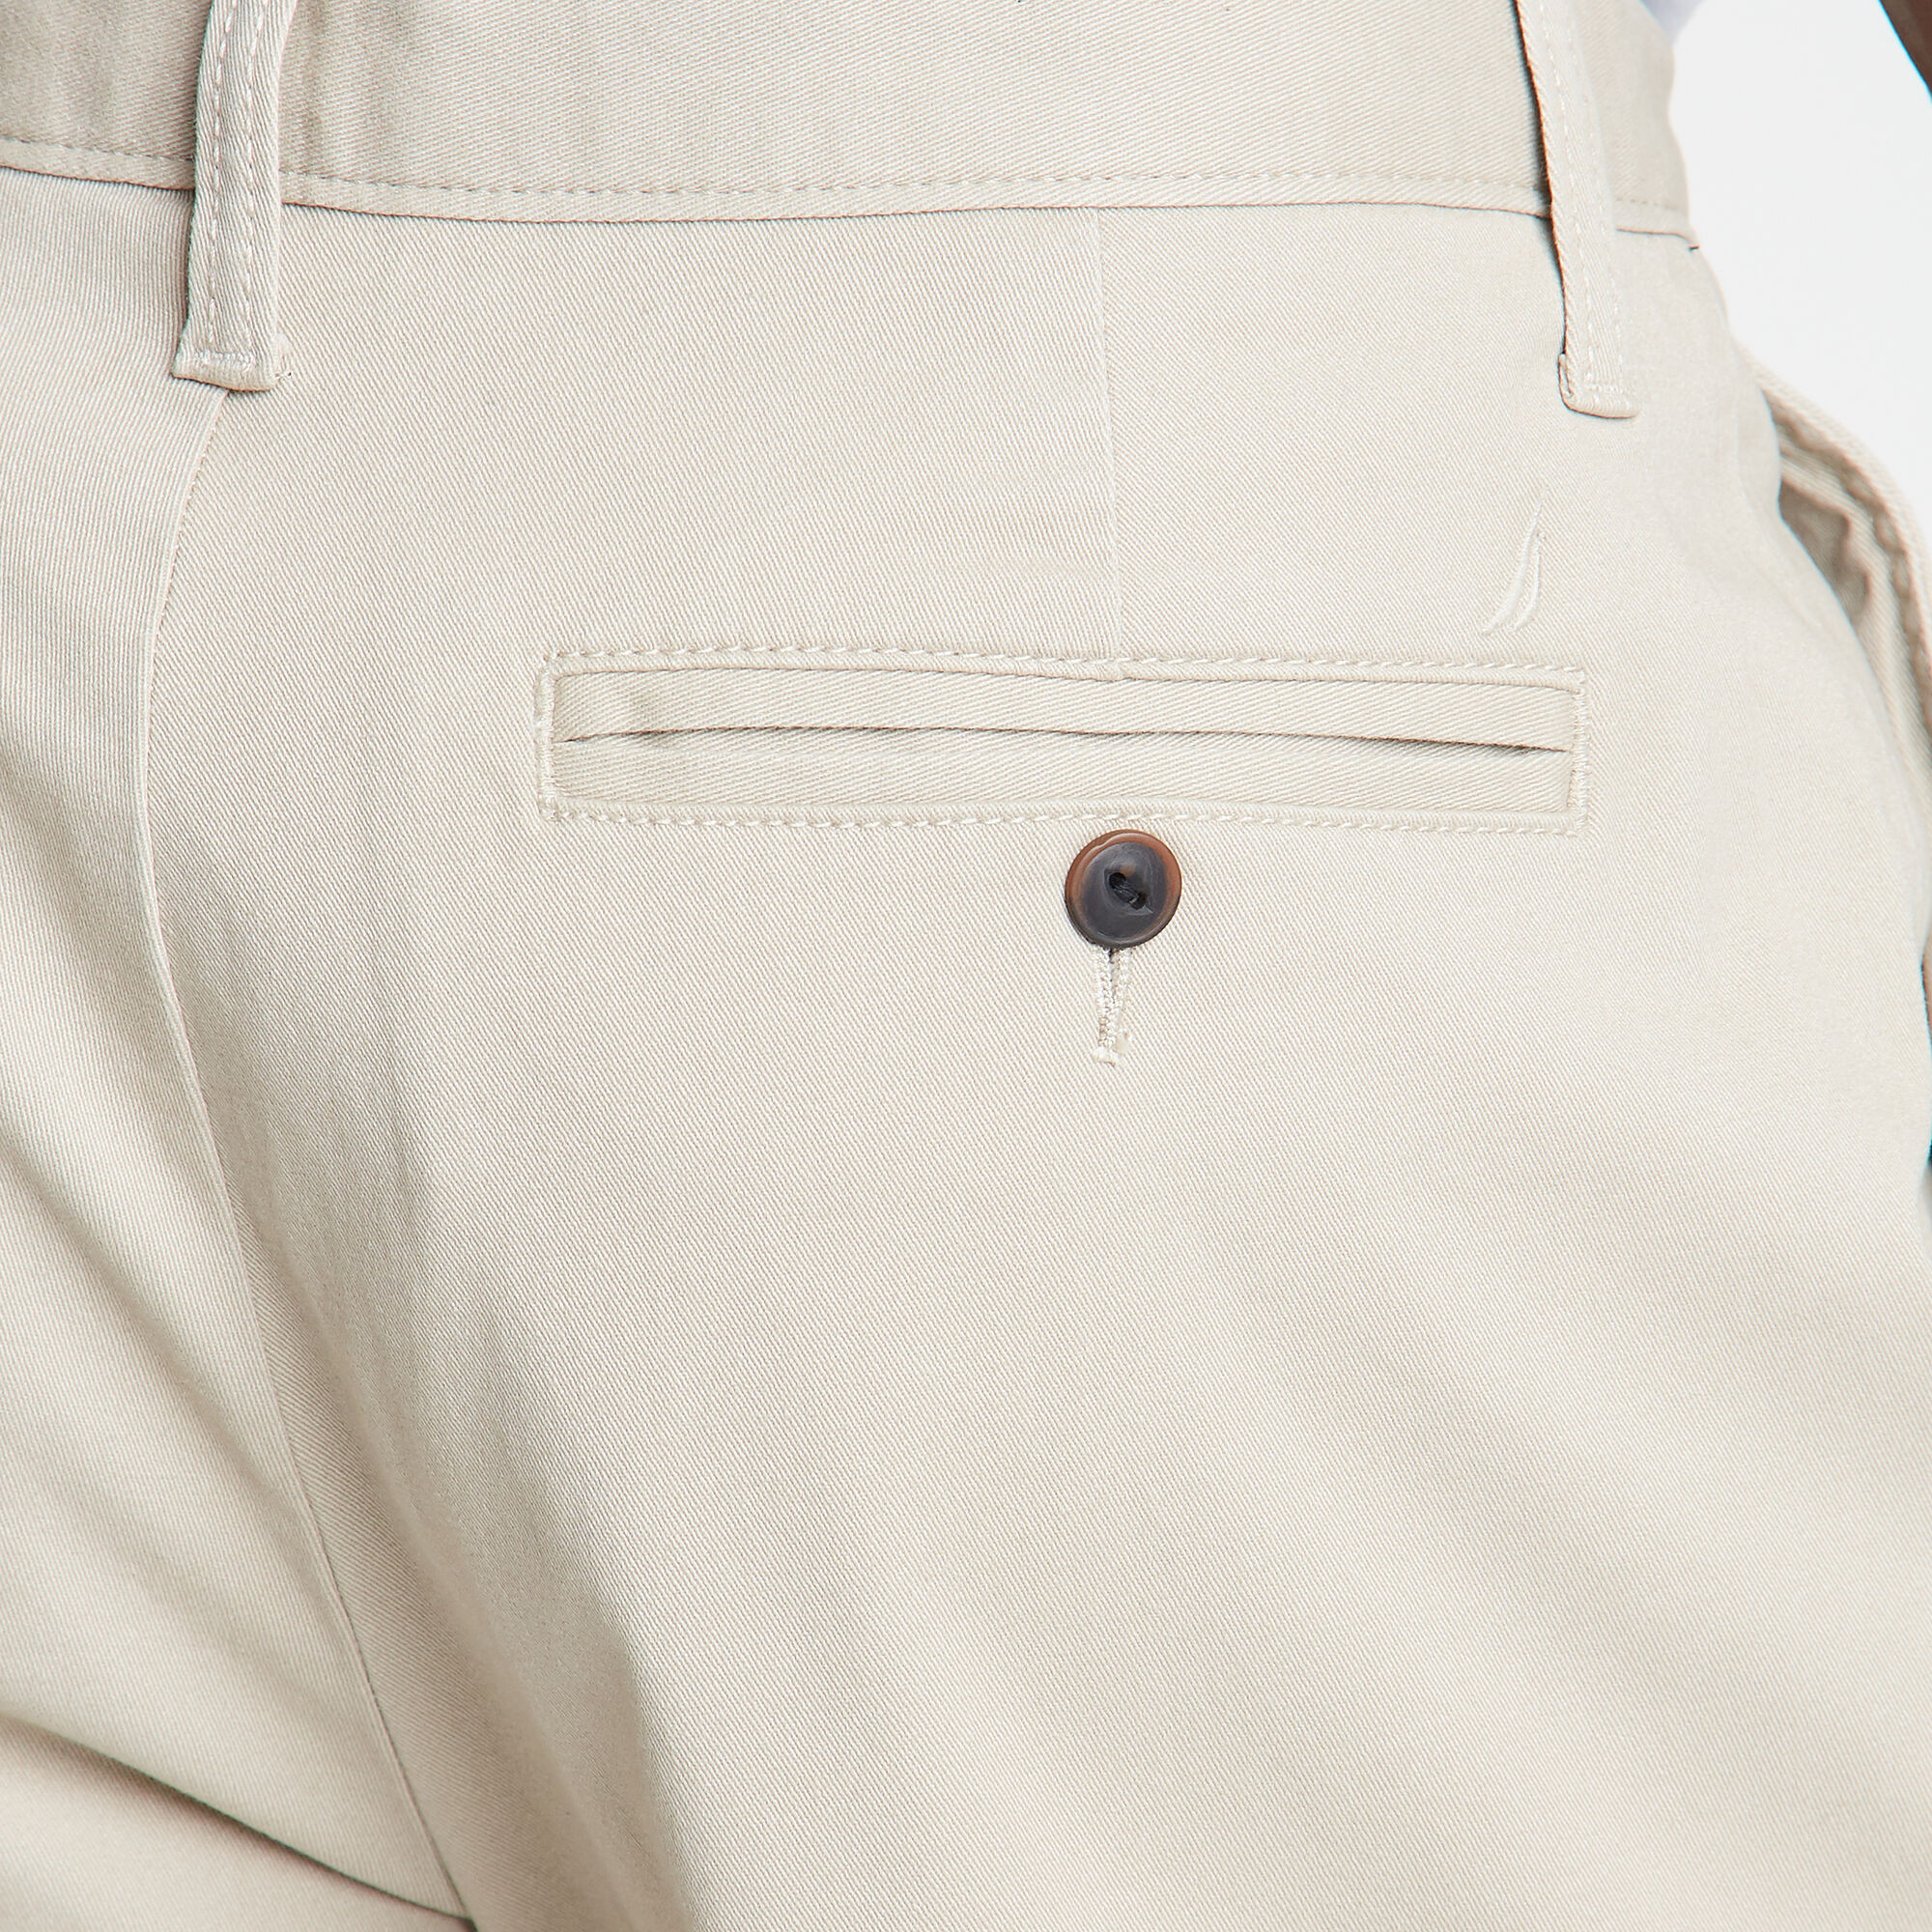 Nautica-Mens-8-5-034-Classic-Fit-Deck-Short-With-Stretch thumbnail 48